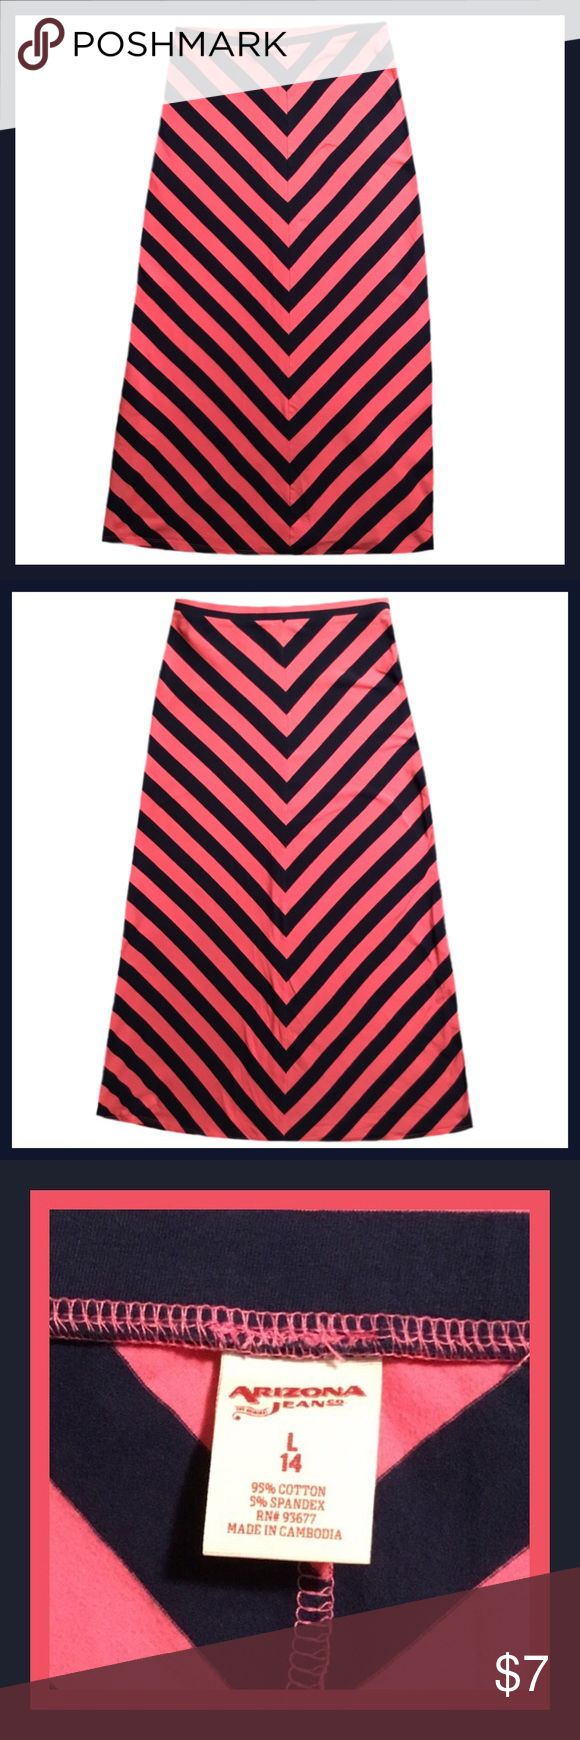 ARIZONA Girl's Long Chevron Skirt ➡️Gently used ARIZONA girl's long chevron skirt.                                                                                         ➡️Size 14                                                                                                                                 ➡️BUNDLE AND SAVE Arizona Jean Company Bottoms Skirts